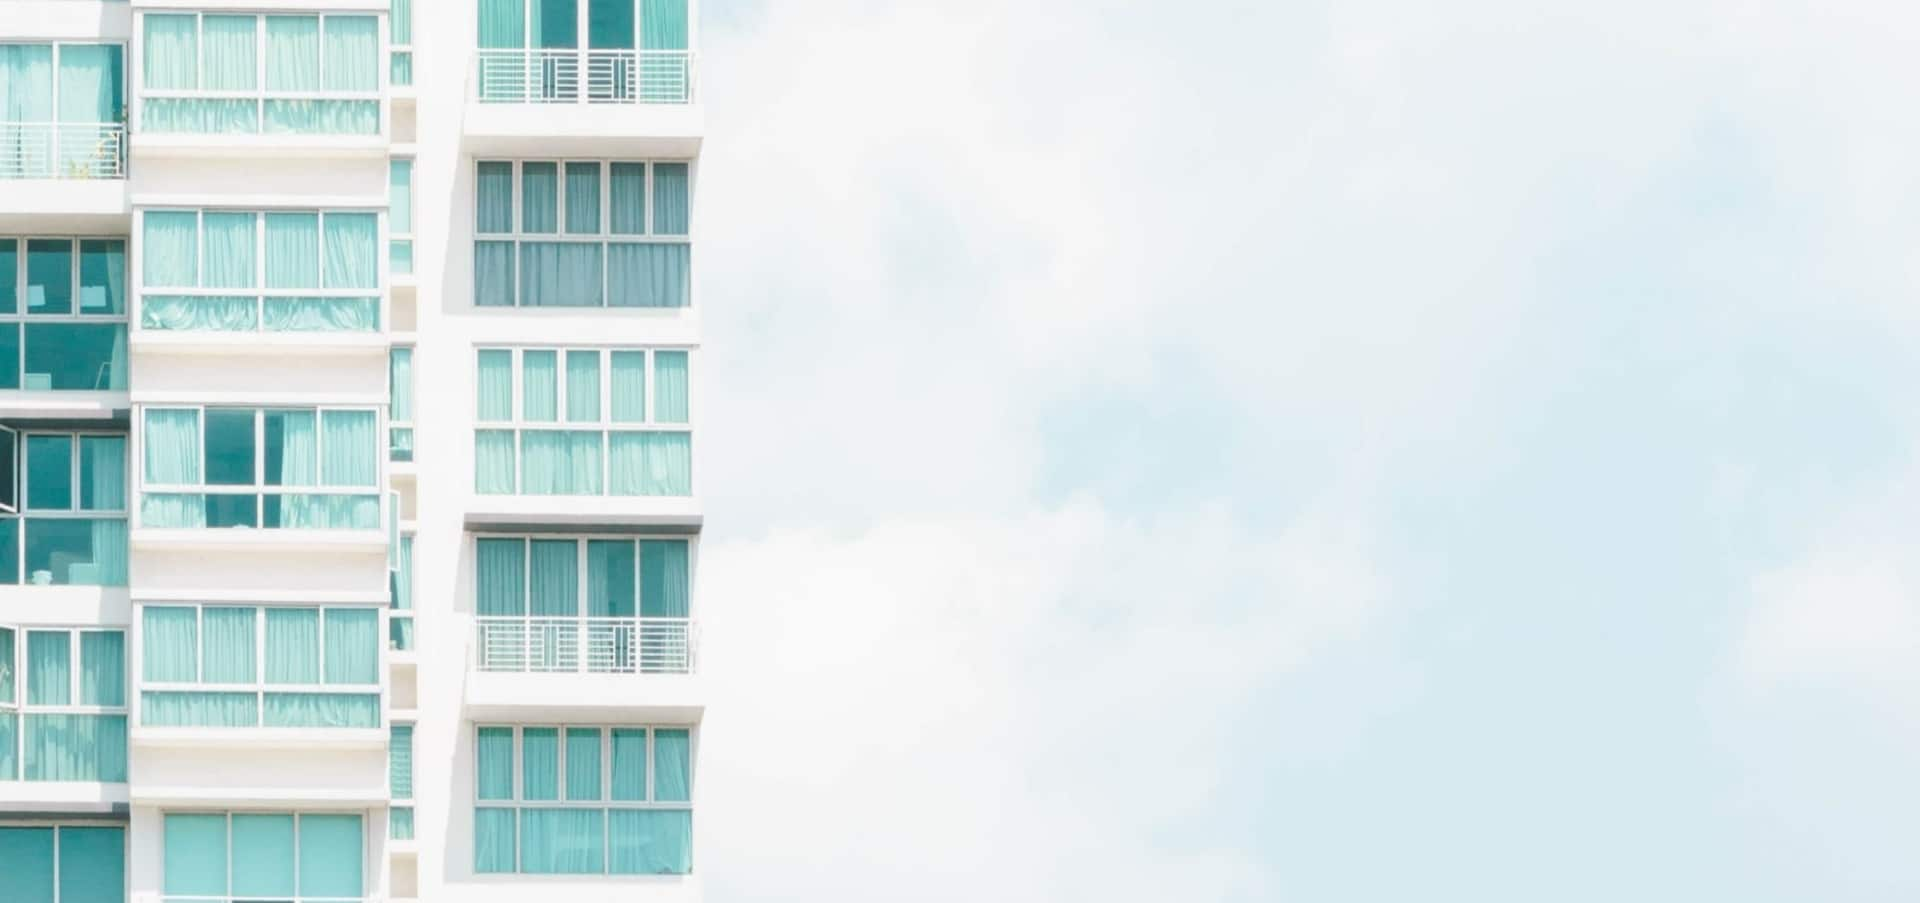 Stock image of a high-rise apartment building